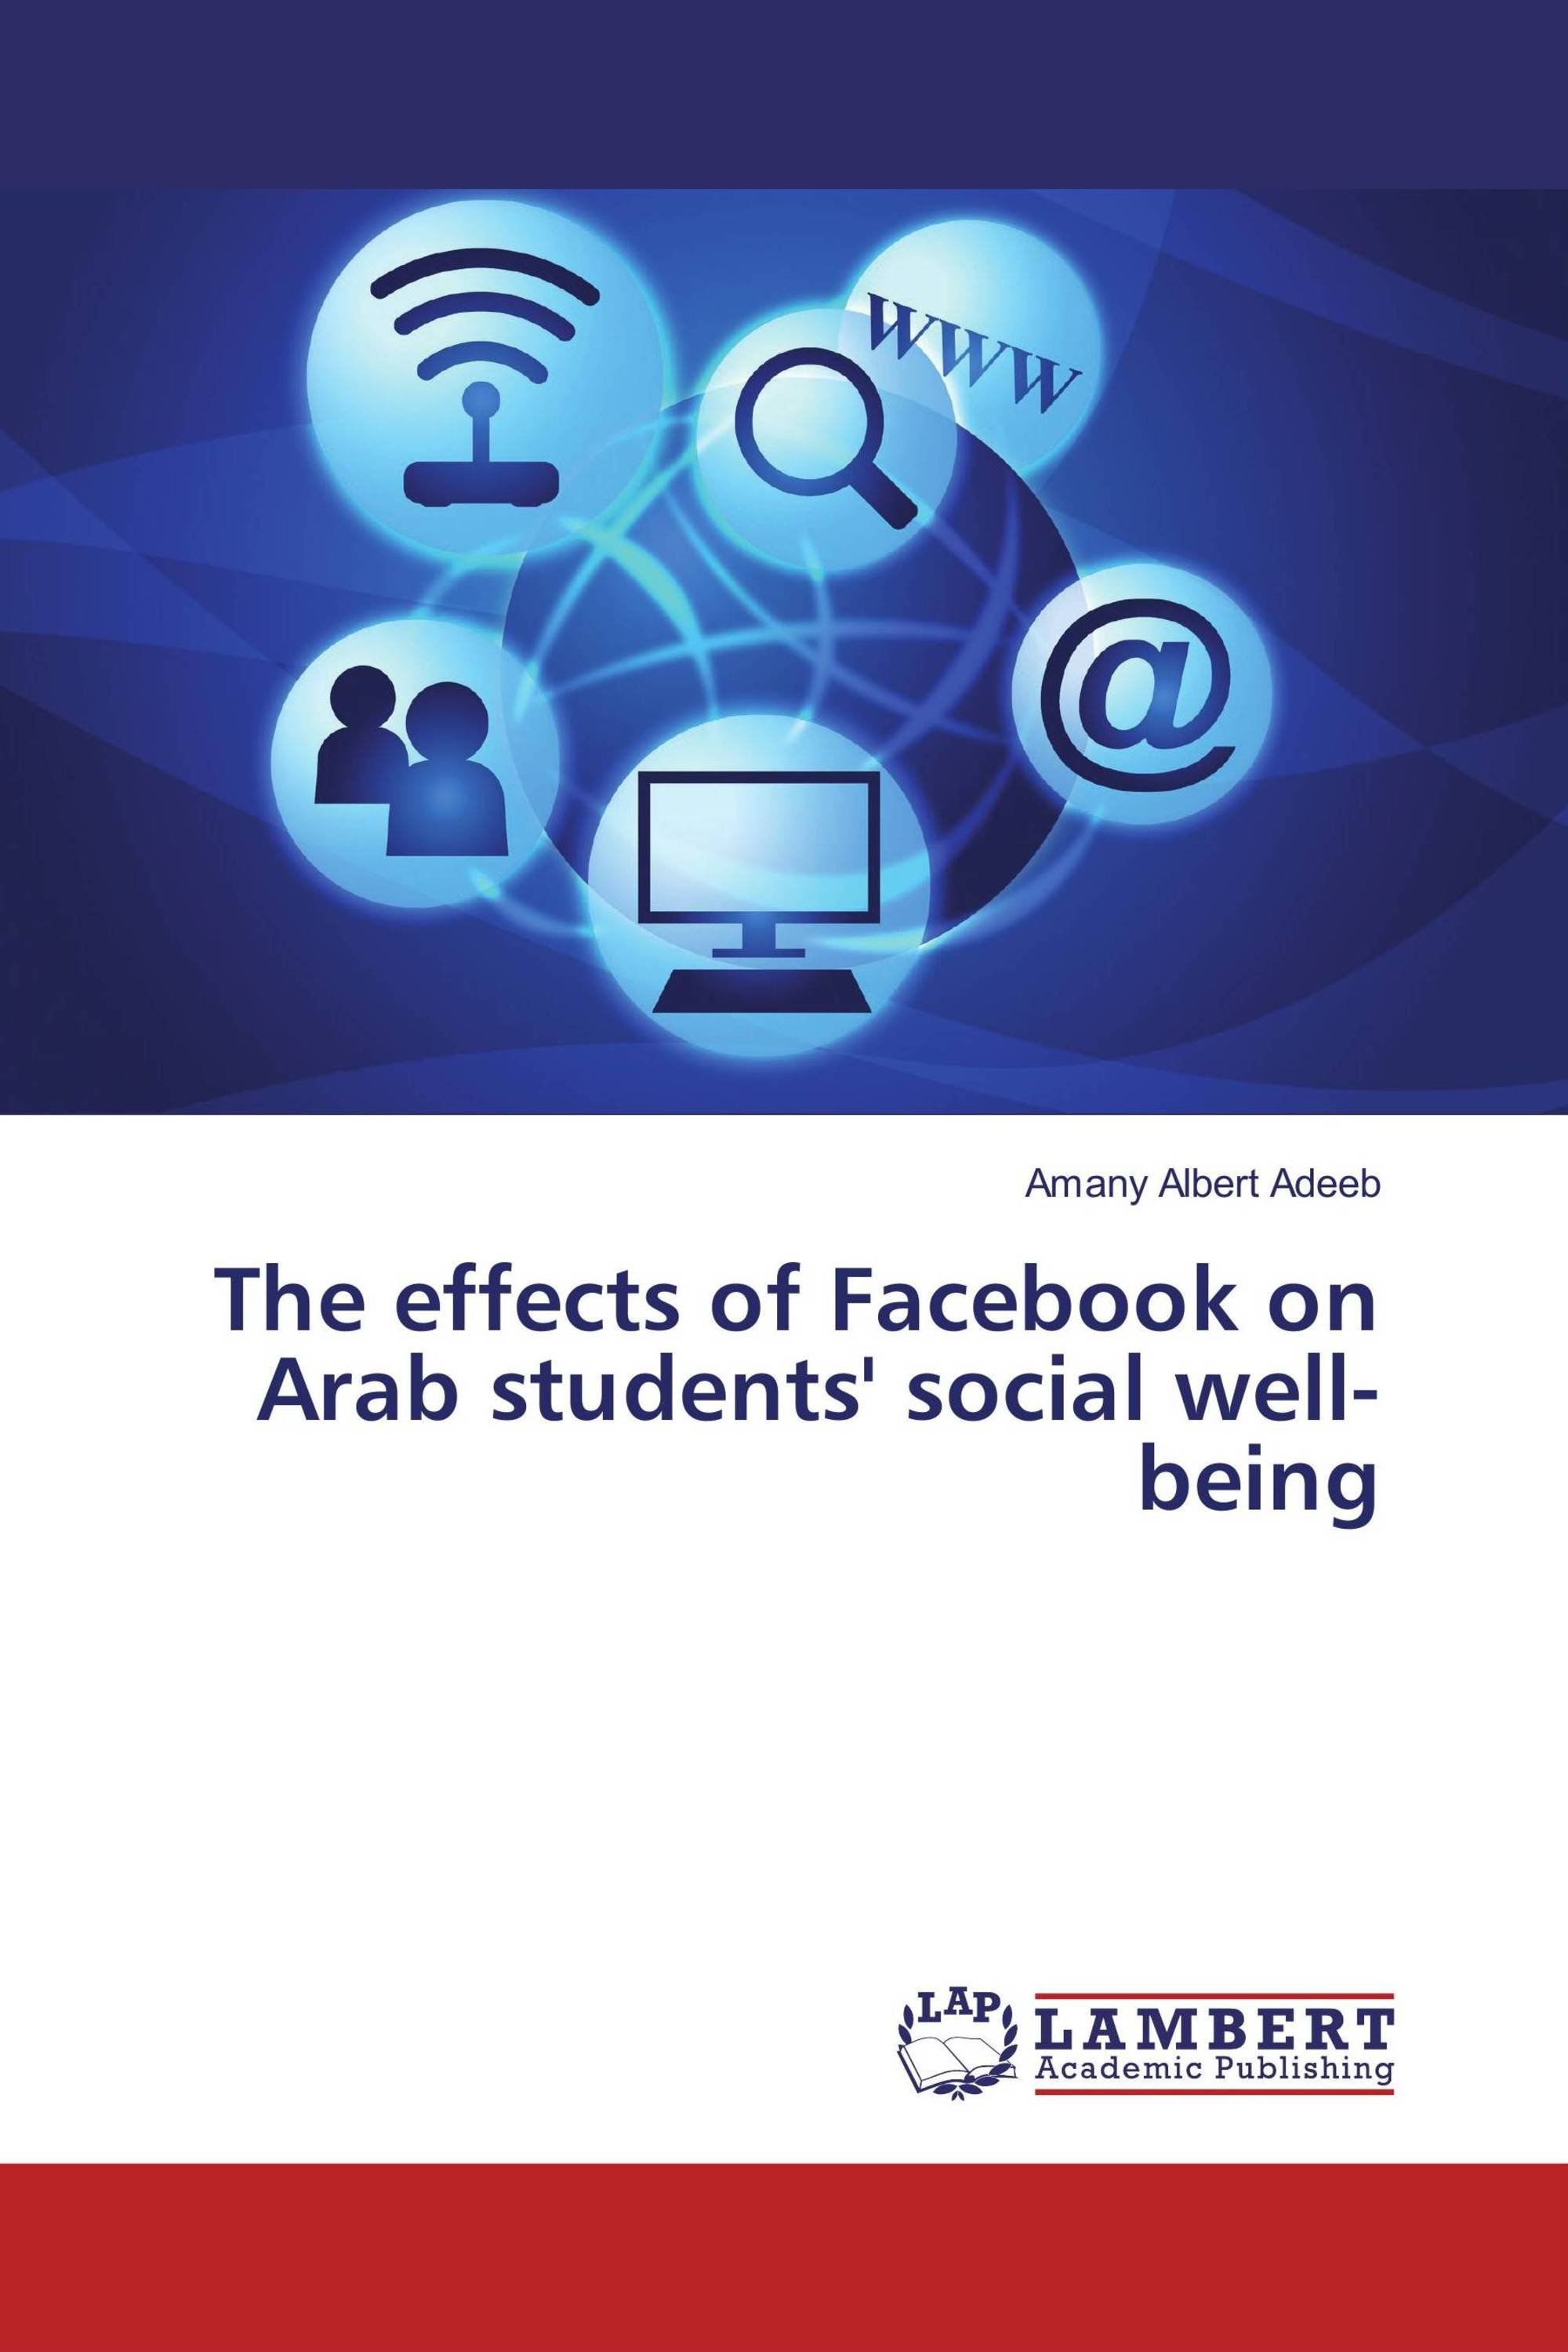 effects of facebook in the academic Academic tasks) and perceived impact of facebook use on academic performance based on the presented research and literature review, the following predictions and research questions were formed.